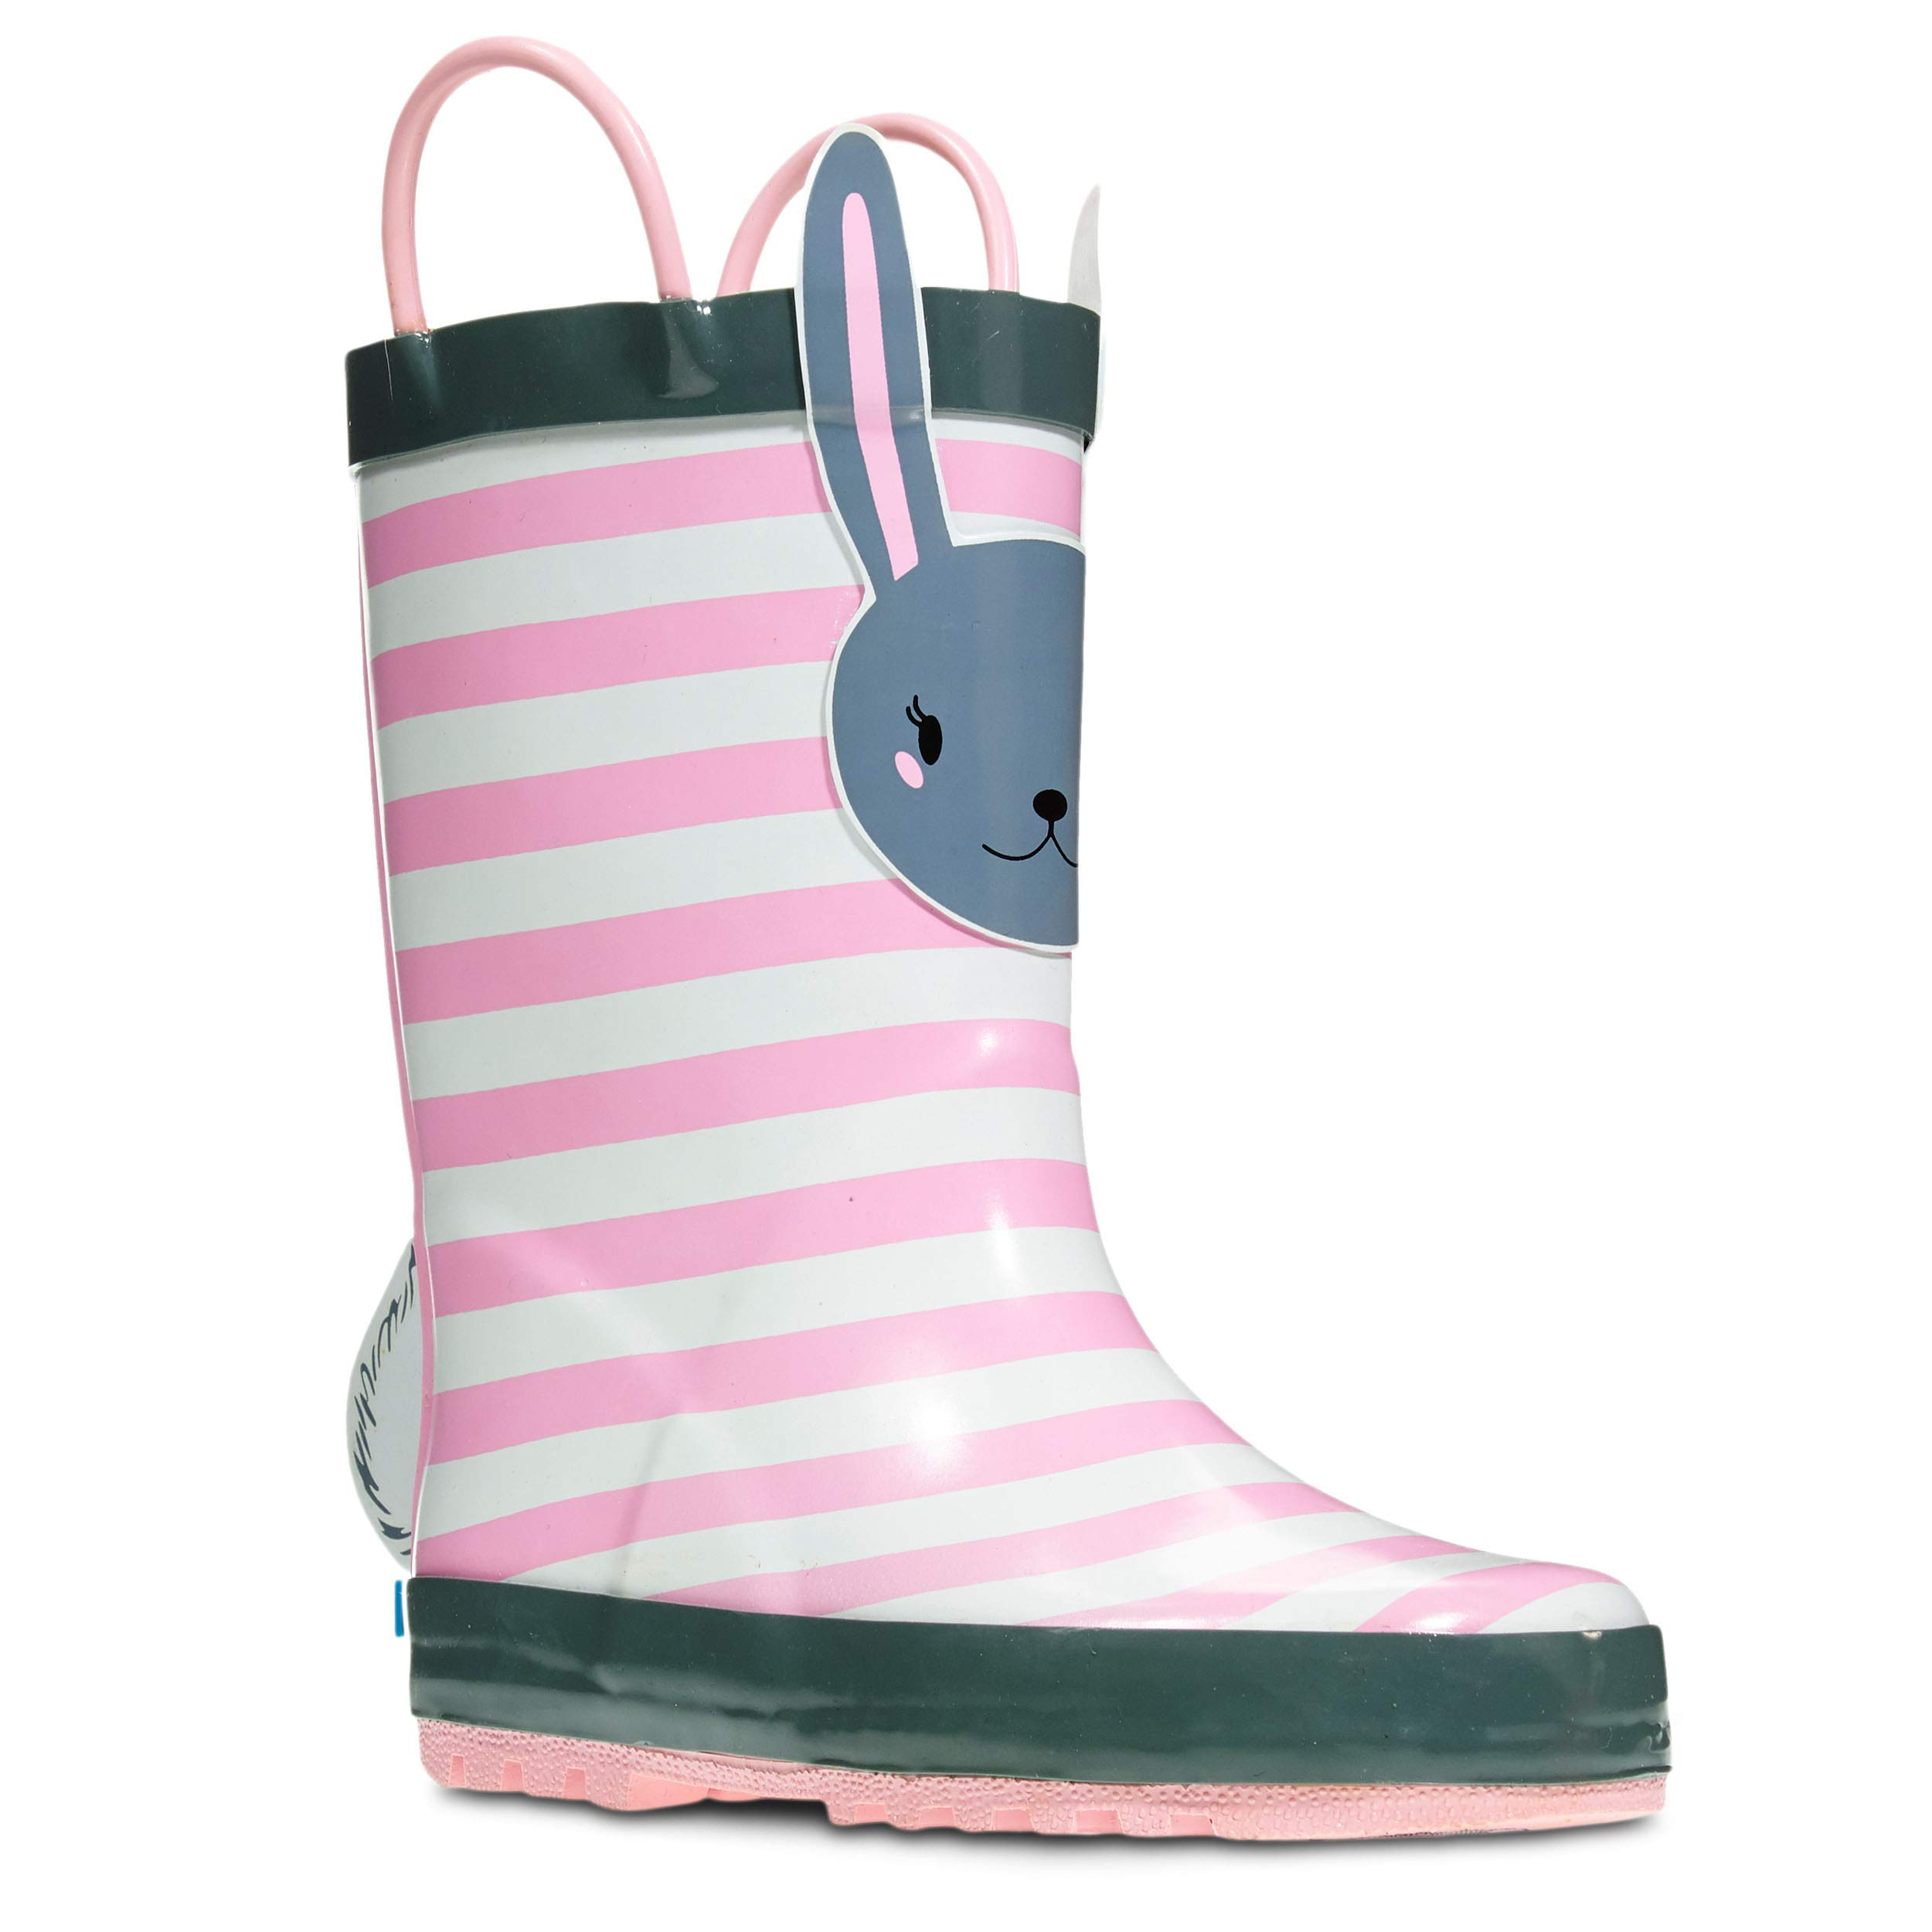 e2021f4a9c2 Best Rated in Girls' Boots & Helpful Customer Reviews - Amazon.com